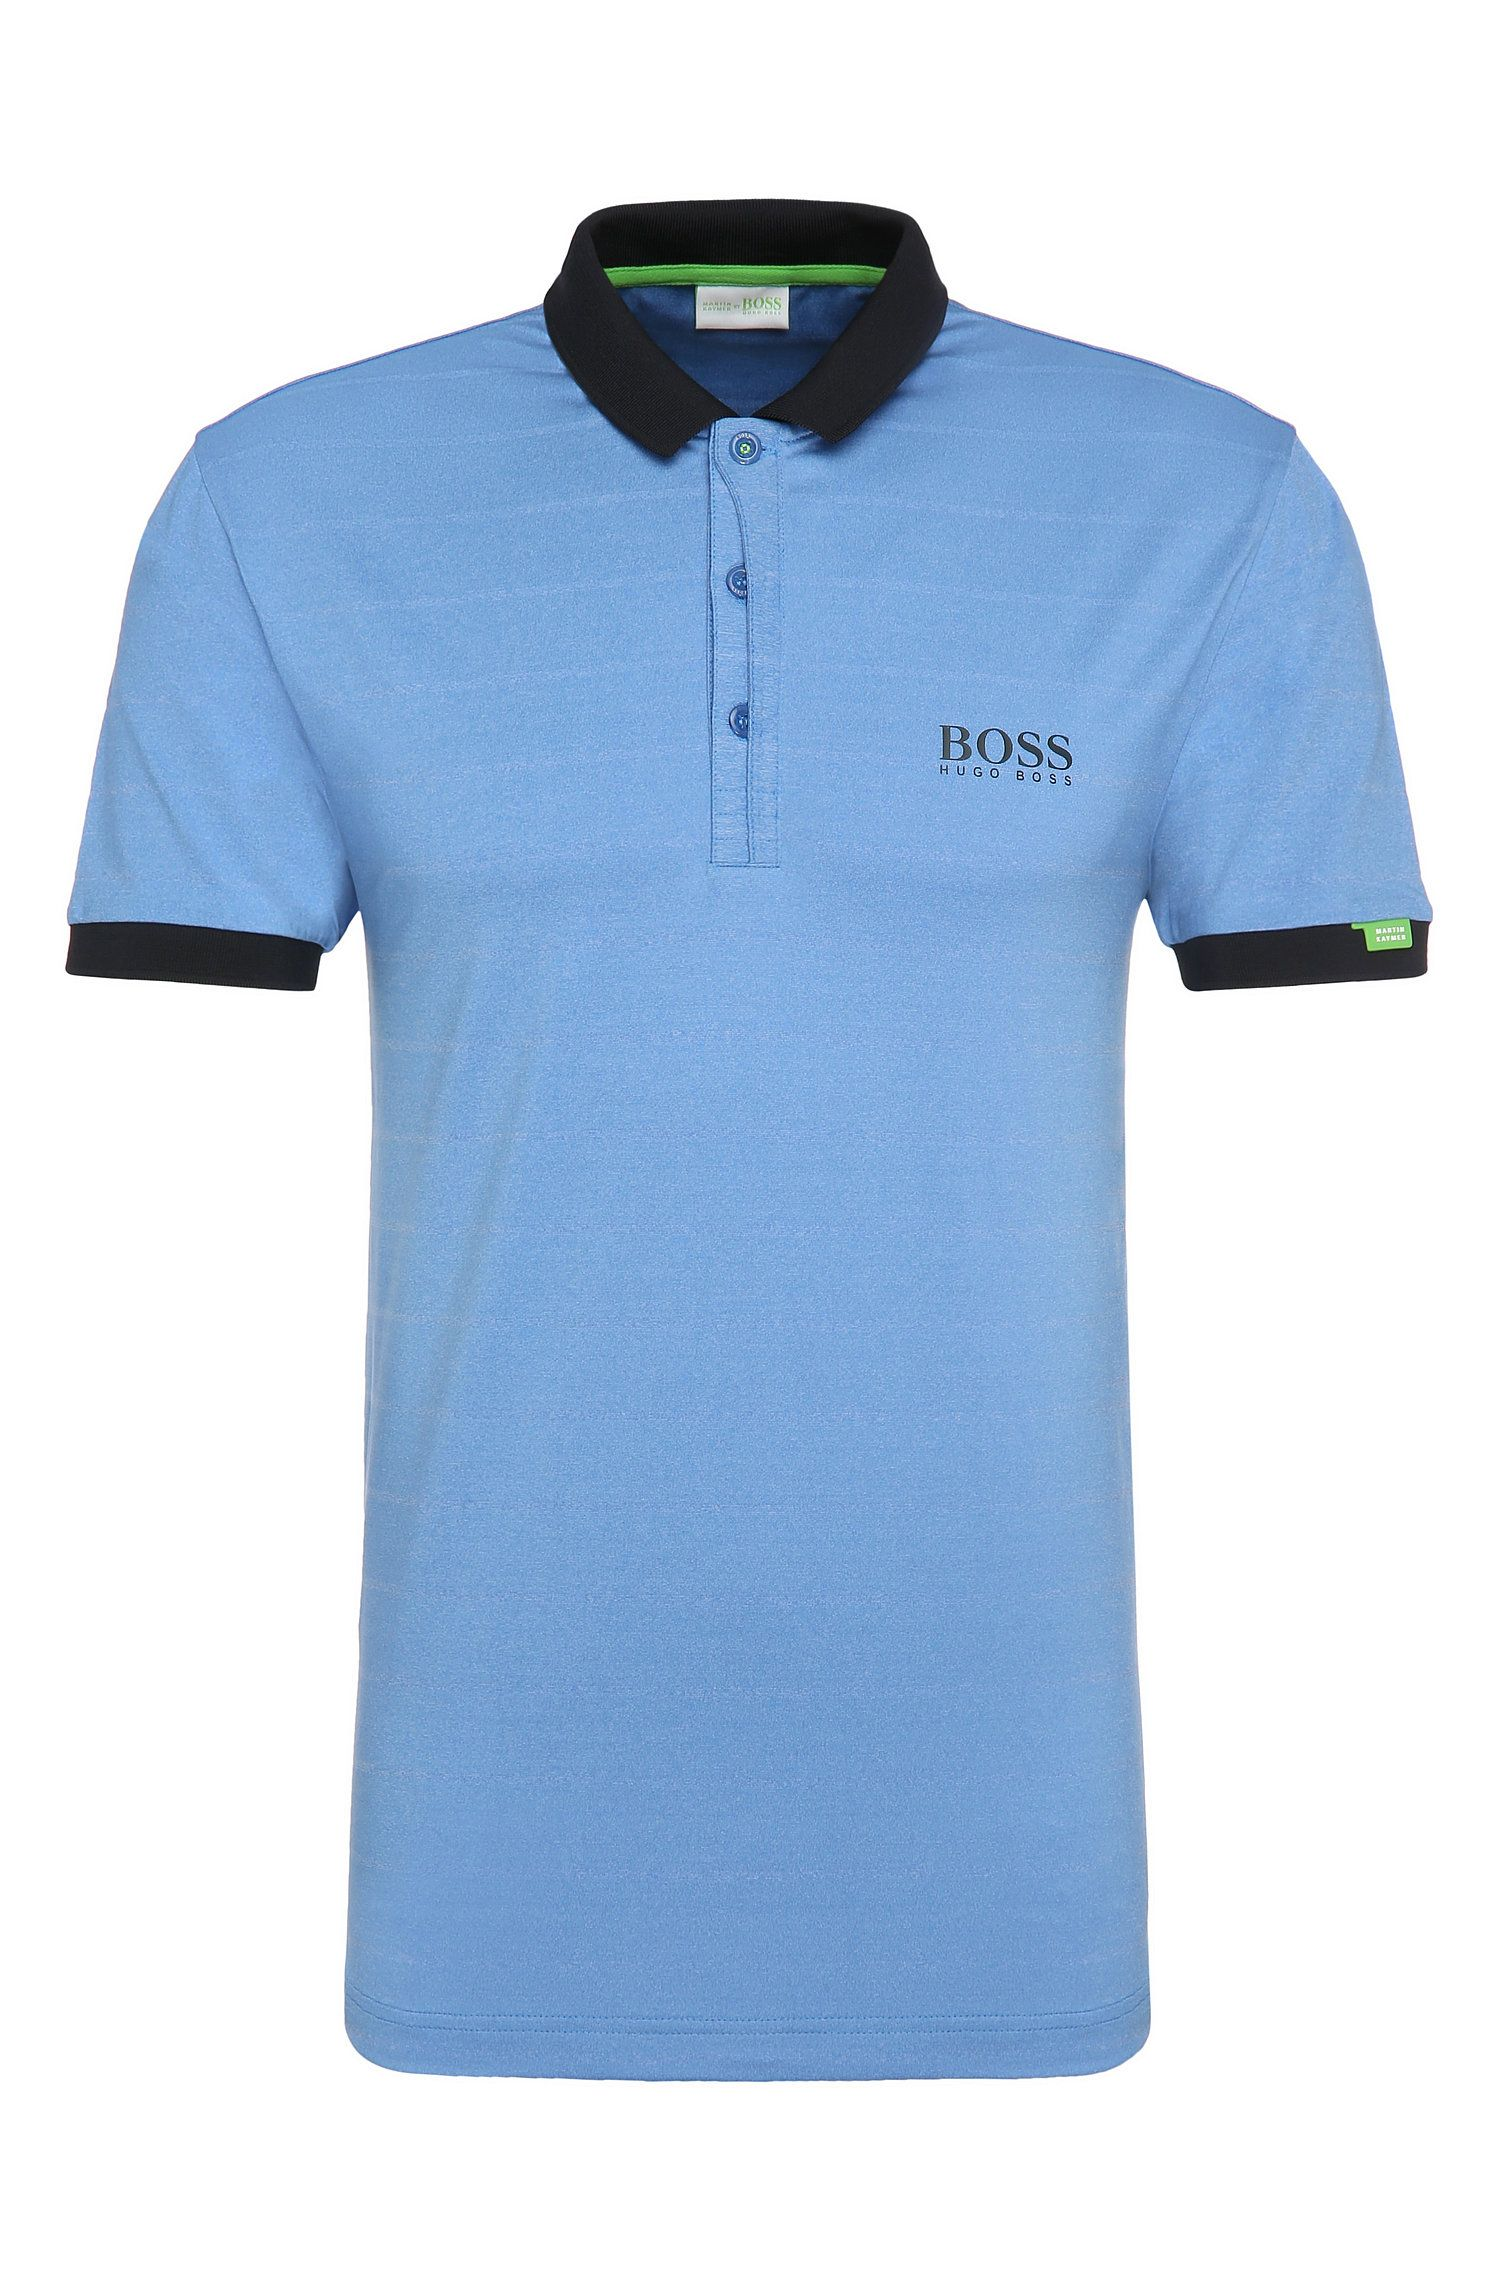 'Paddy MK' | Modern Fit, Moisture Manager Stretch Polo Shirt